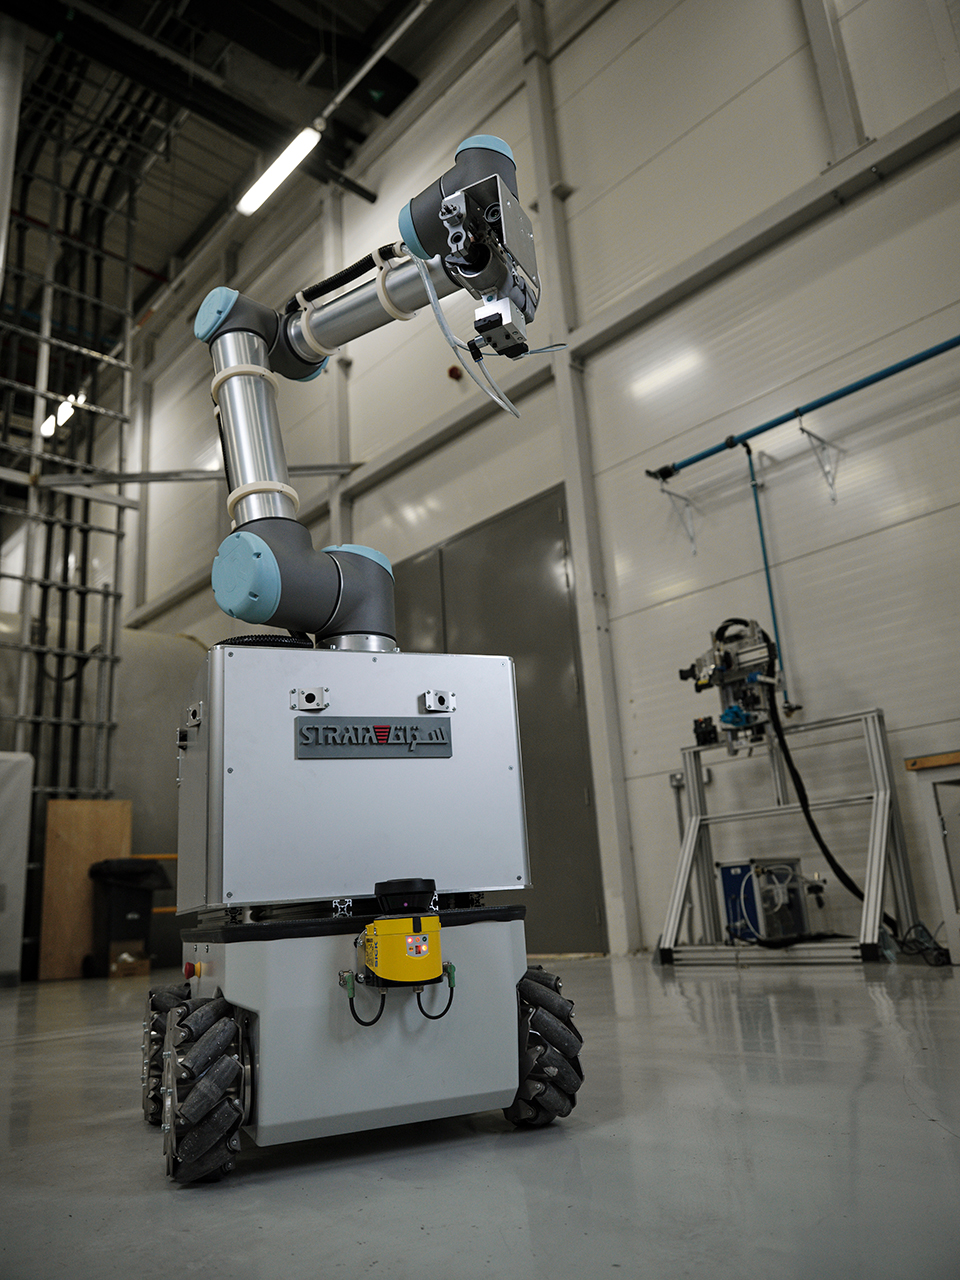 fully developed, the robot head, called an end-effector